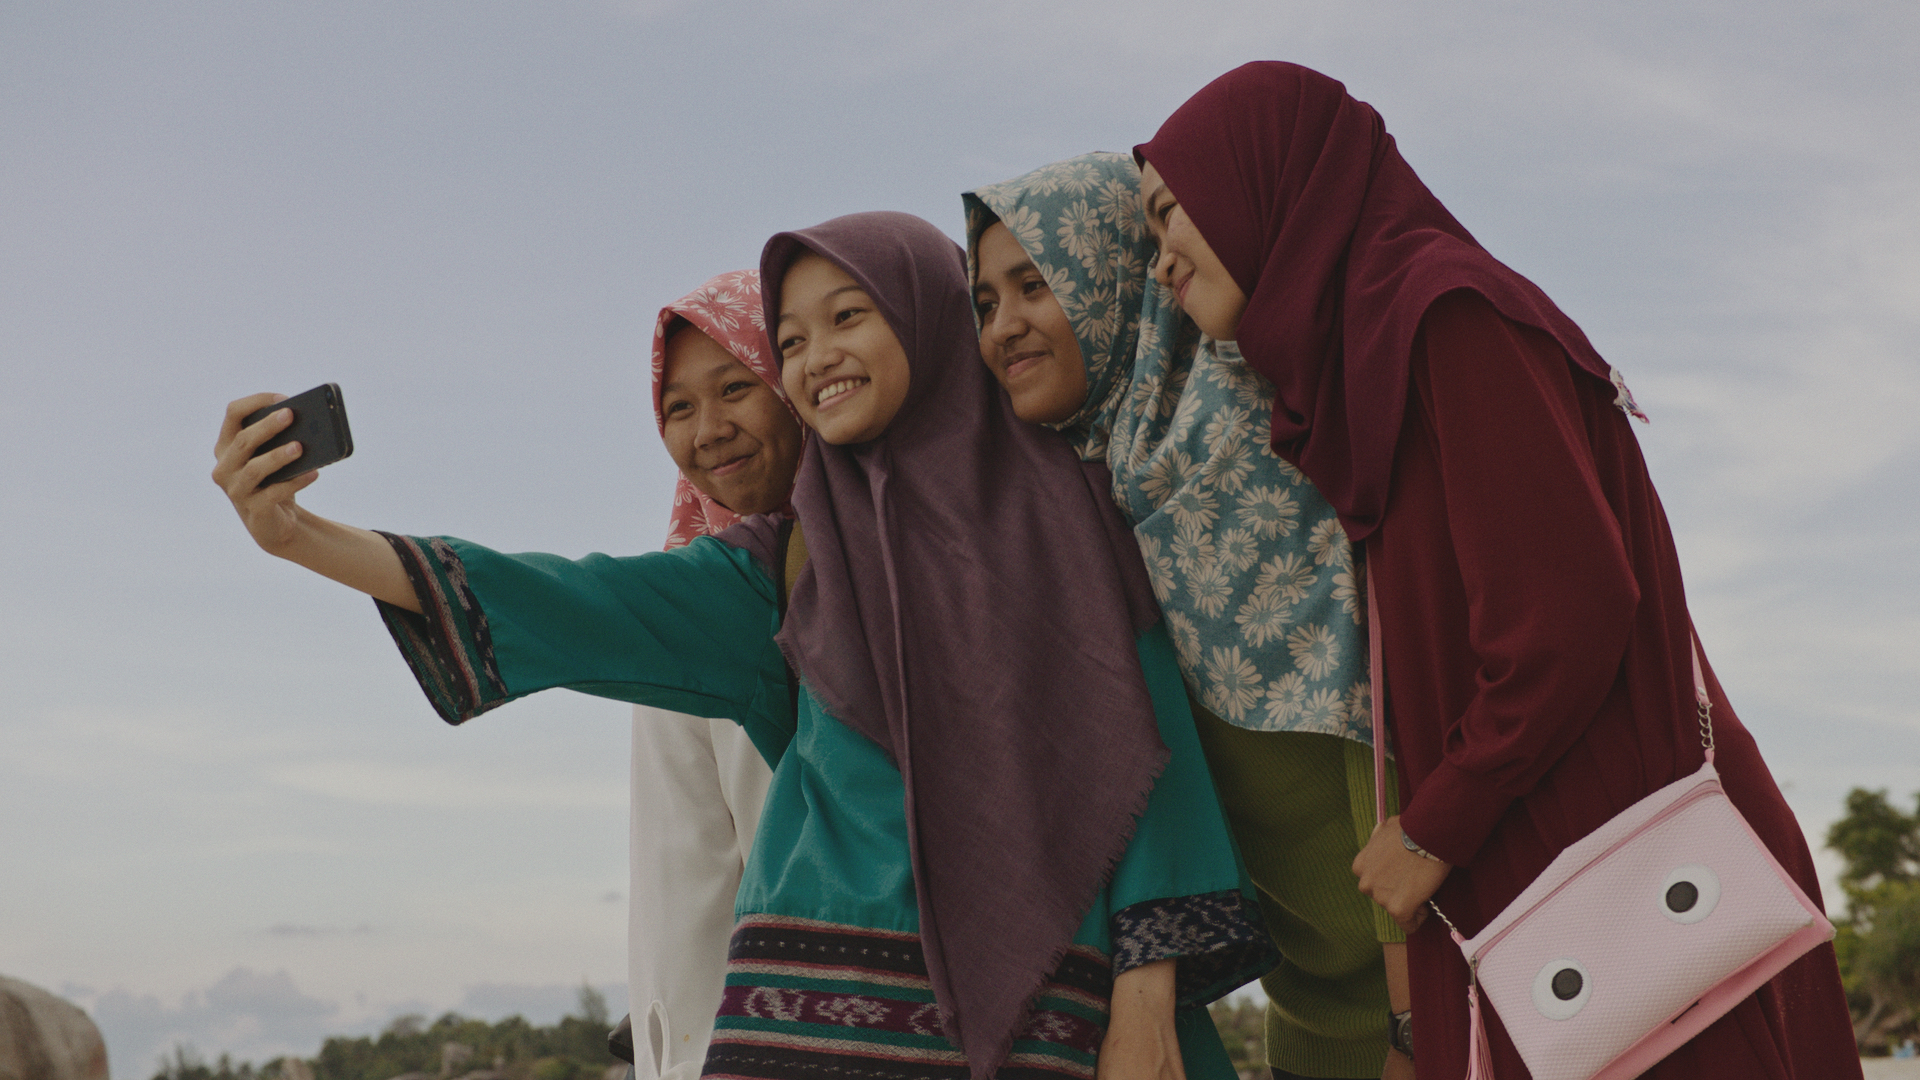 Bottom: Nuha takes a selfie with friends